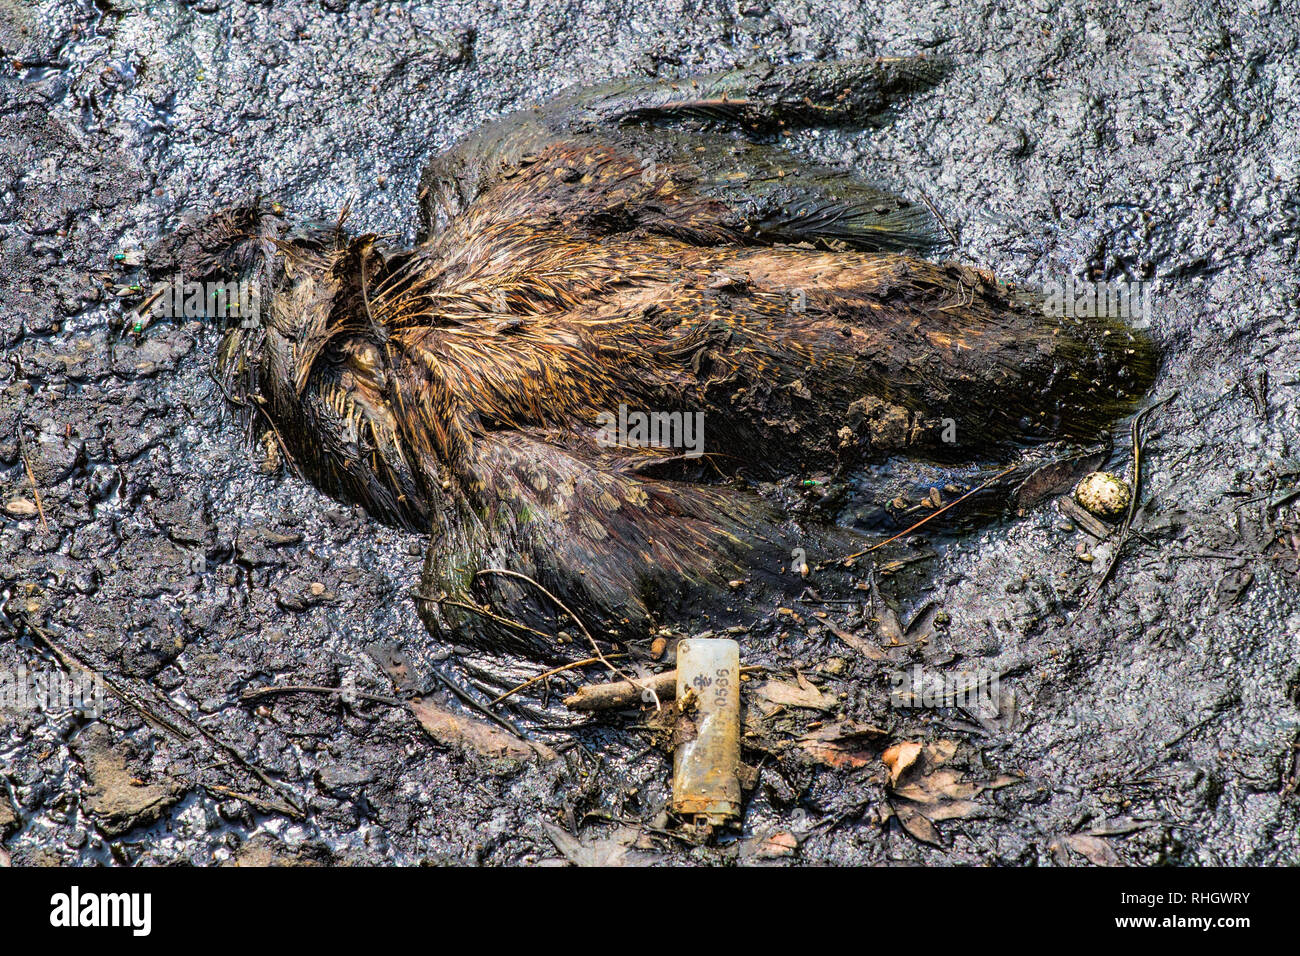 Oriental turtle dove (Streptopelia orientalis) carcass in toxic sludge on the outskirts of Incheon, Korea - Stock Image